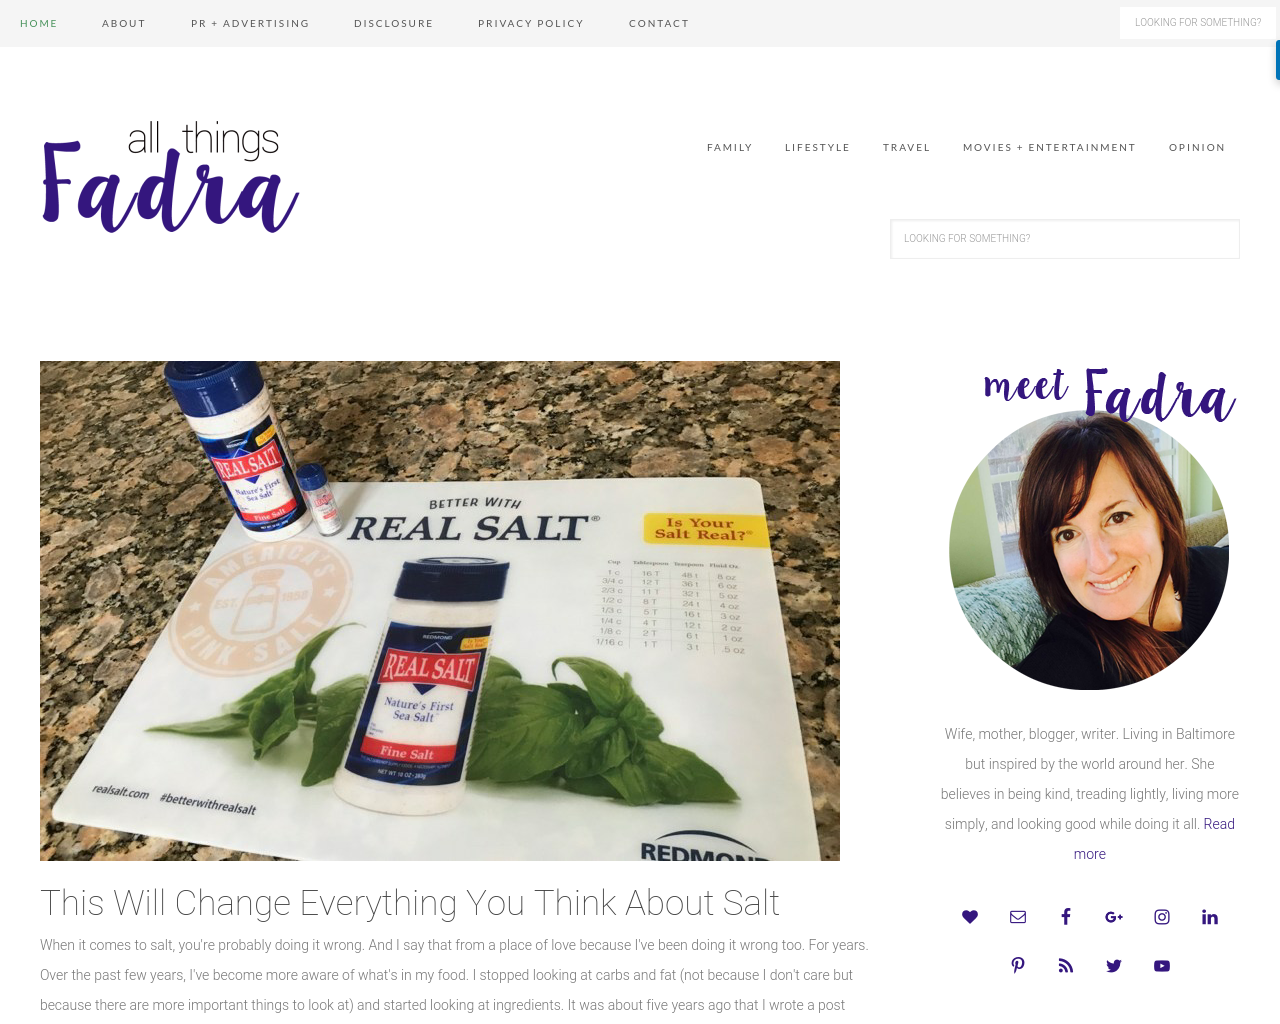 All-Things-Fadra-Advertising-Reviews-Pricing